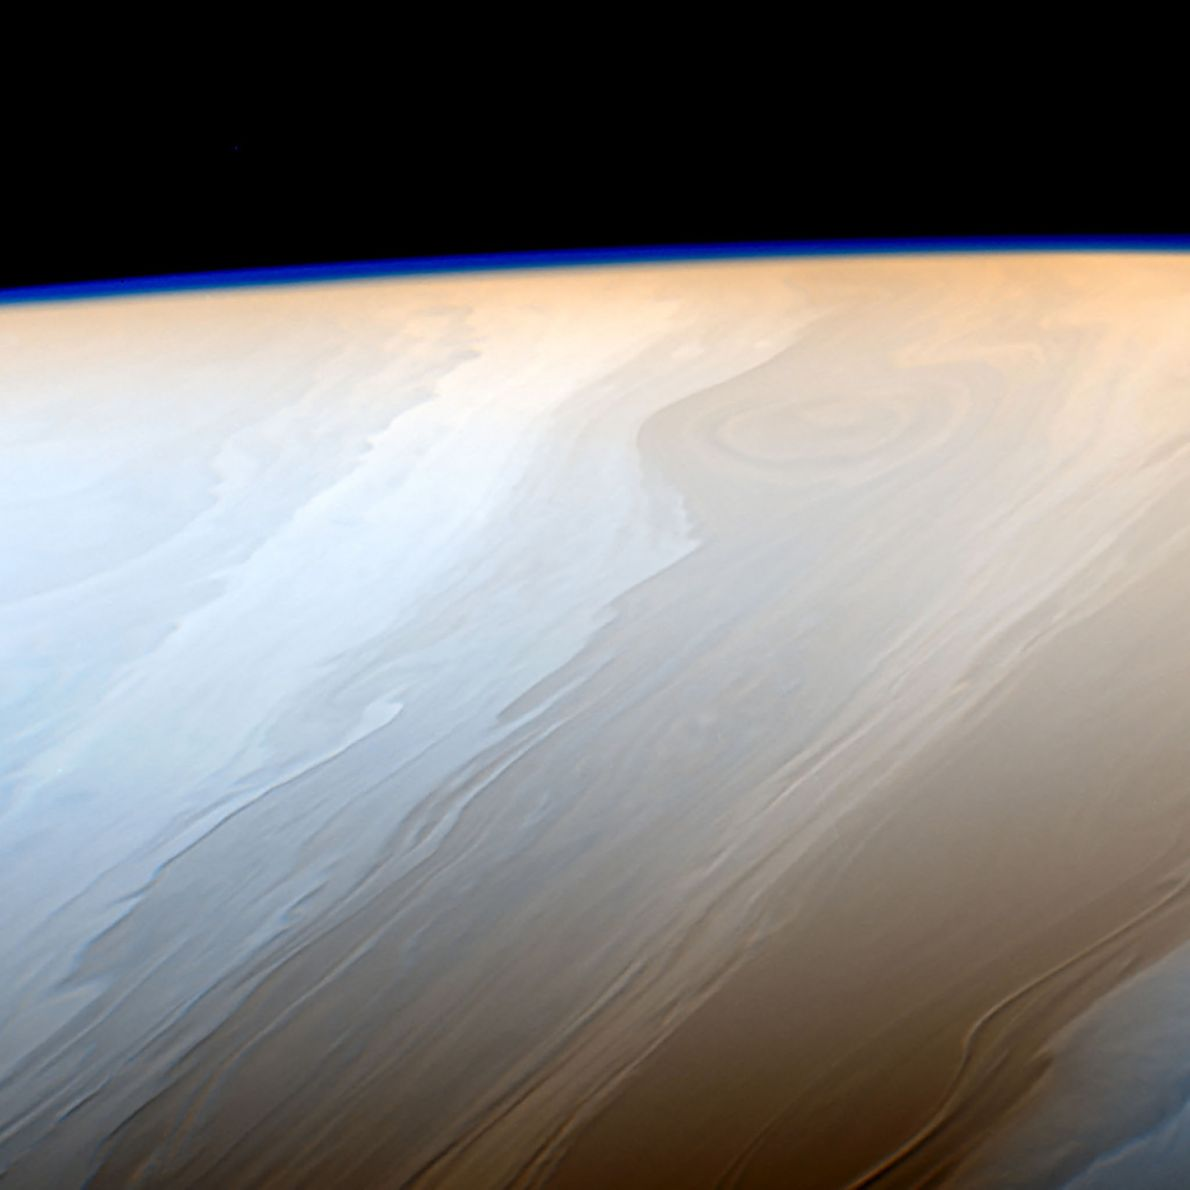 Saturn's upper atmosphere generates the faint haze seen along the limb of the planet in this ...